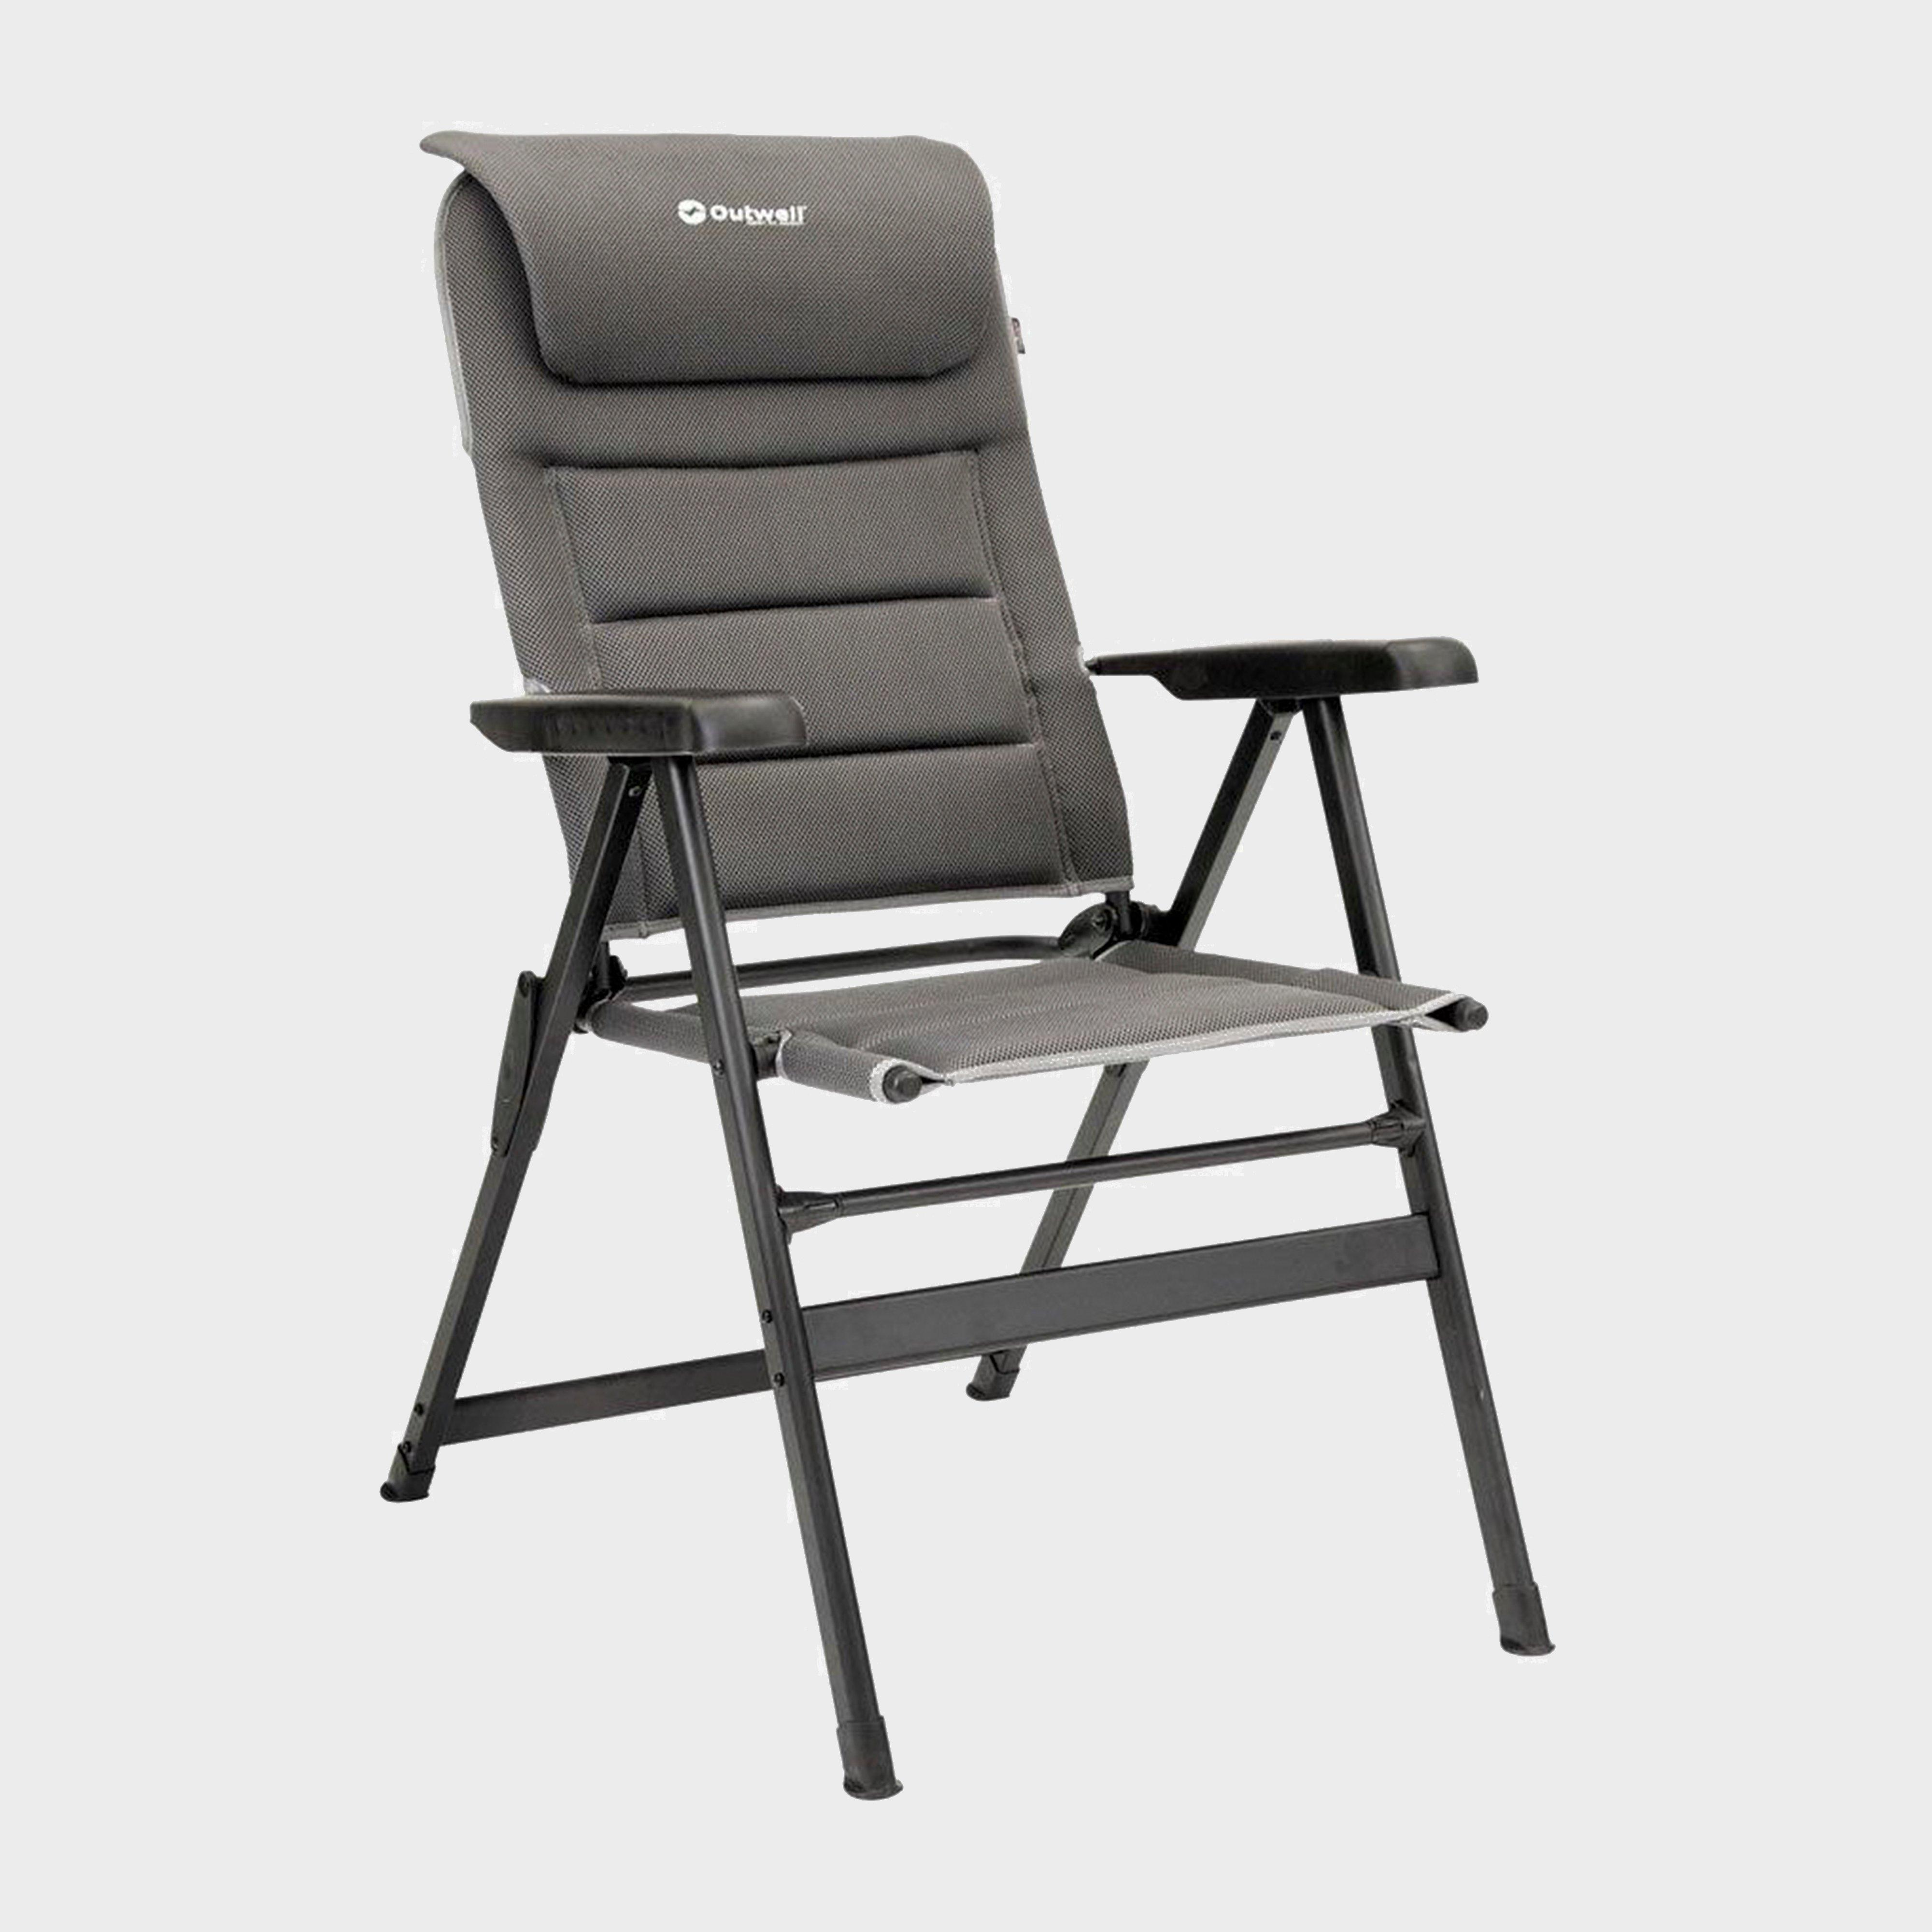 Outwell Outwell Kenai Camping Chair - Grey, Grey